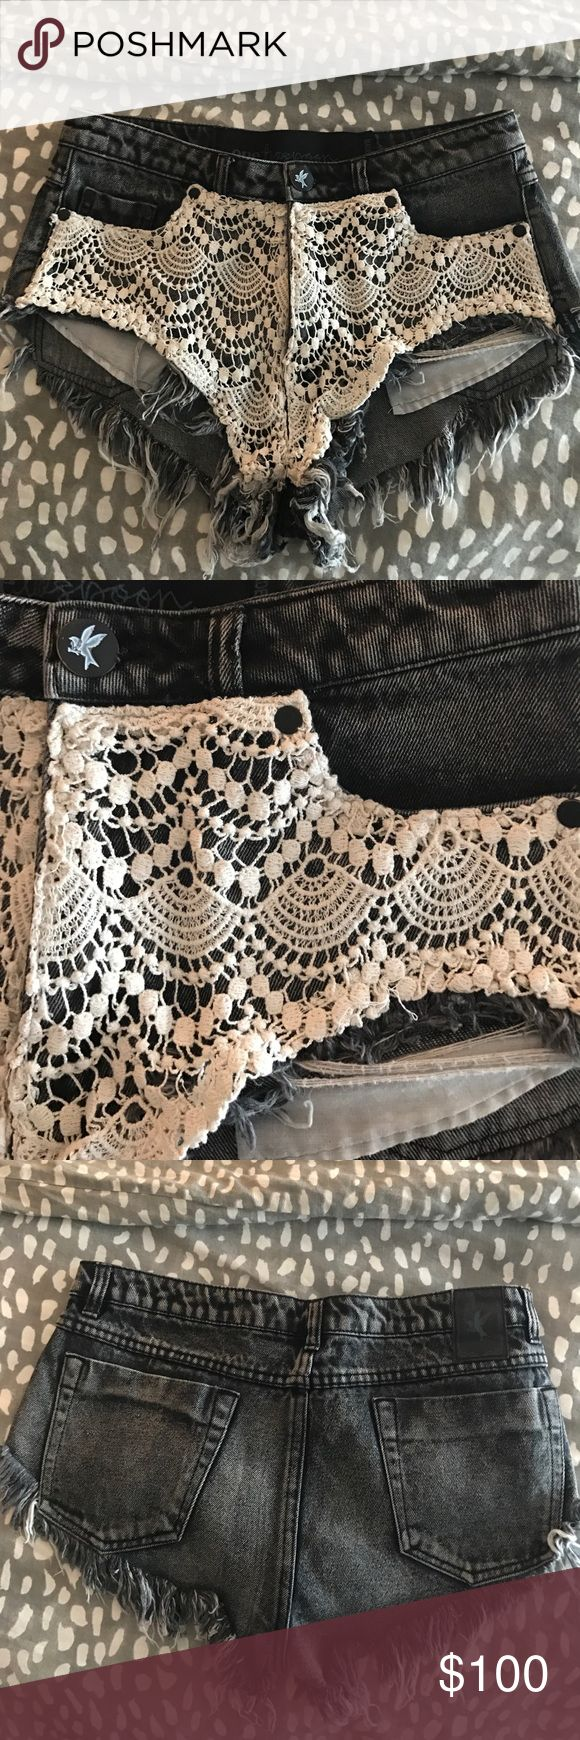 One teaspoon Rocco roller lace shorts sz 26 Amazing condition! Like new!! Size 26. Pockets provide more coverage in front fuller lower coverage in back. A washed darker grey with cream lace. You will 😍 One Teaspoon Shorts Jean Shorts